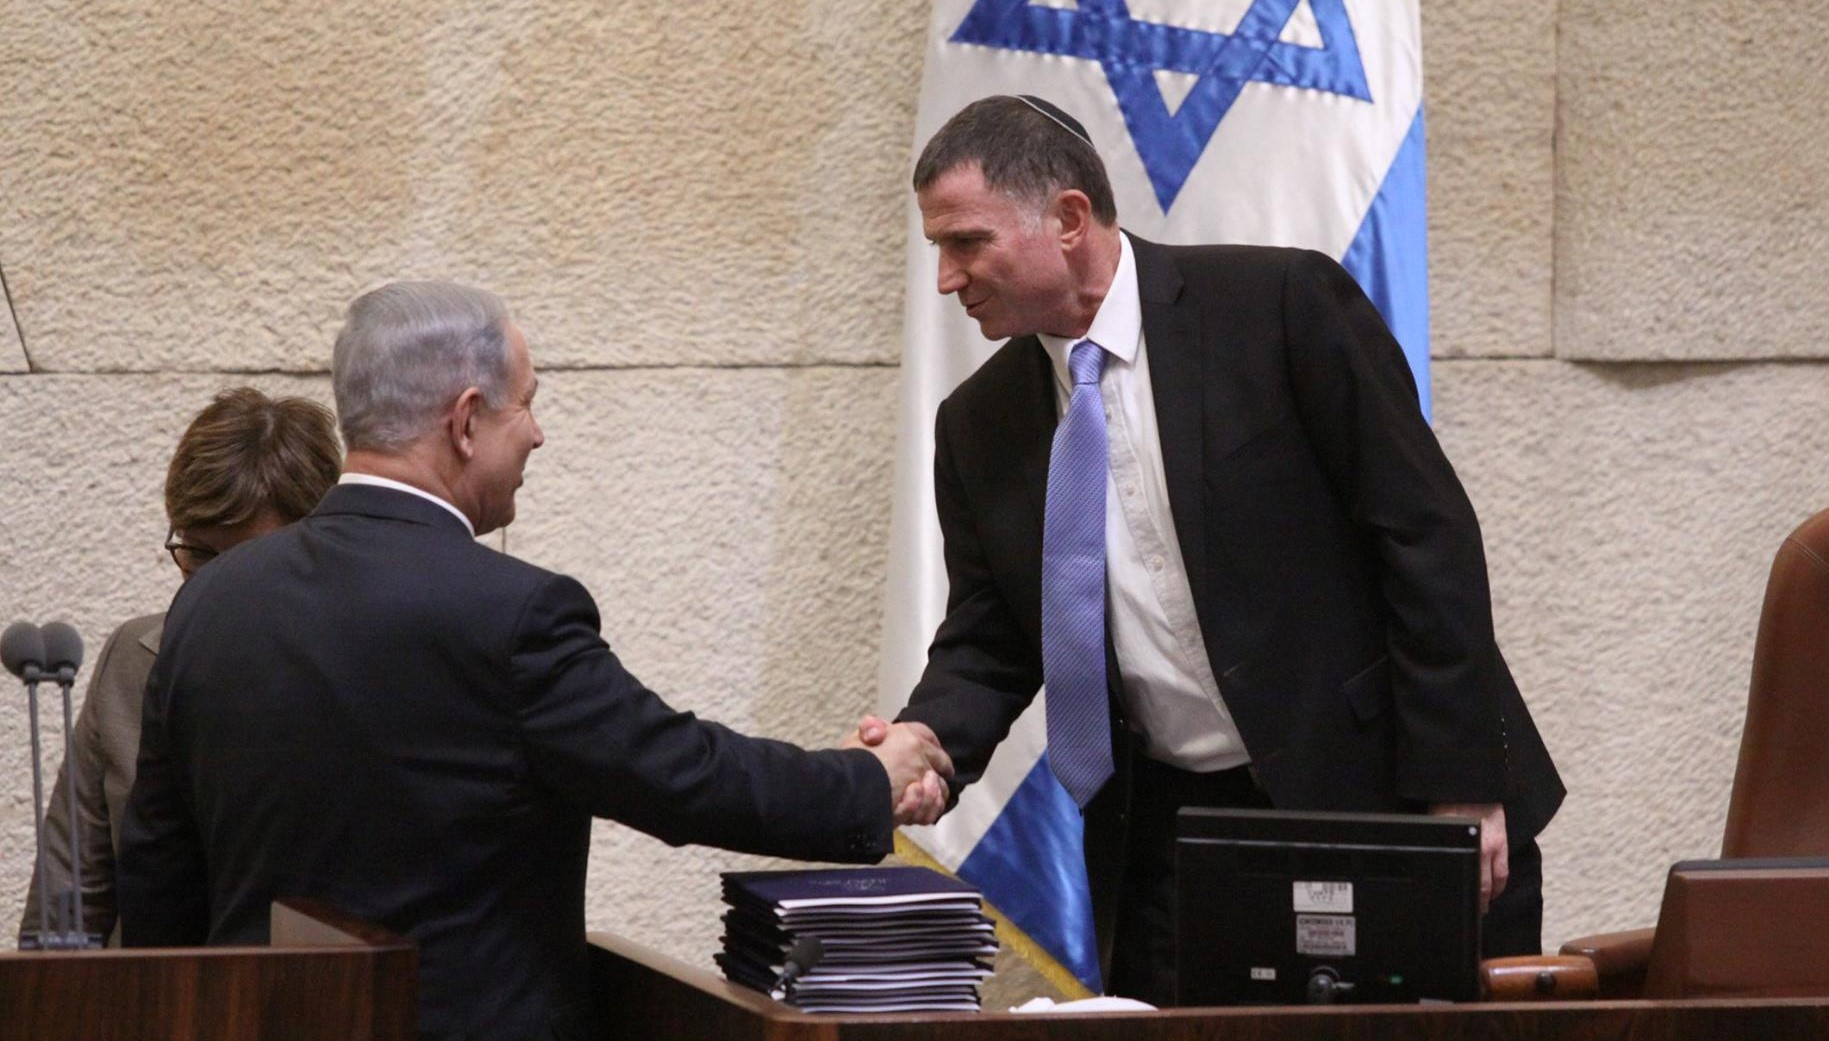 Prime Minister Benjamin Netanyahu and Speaker of the Knesset Yuli Edelstein in the parliamentary plenum